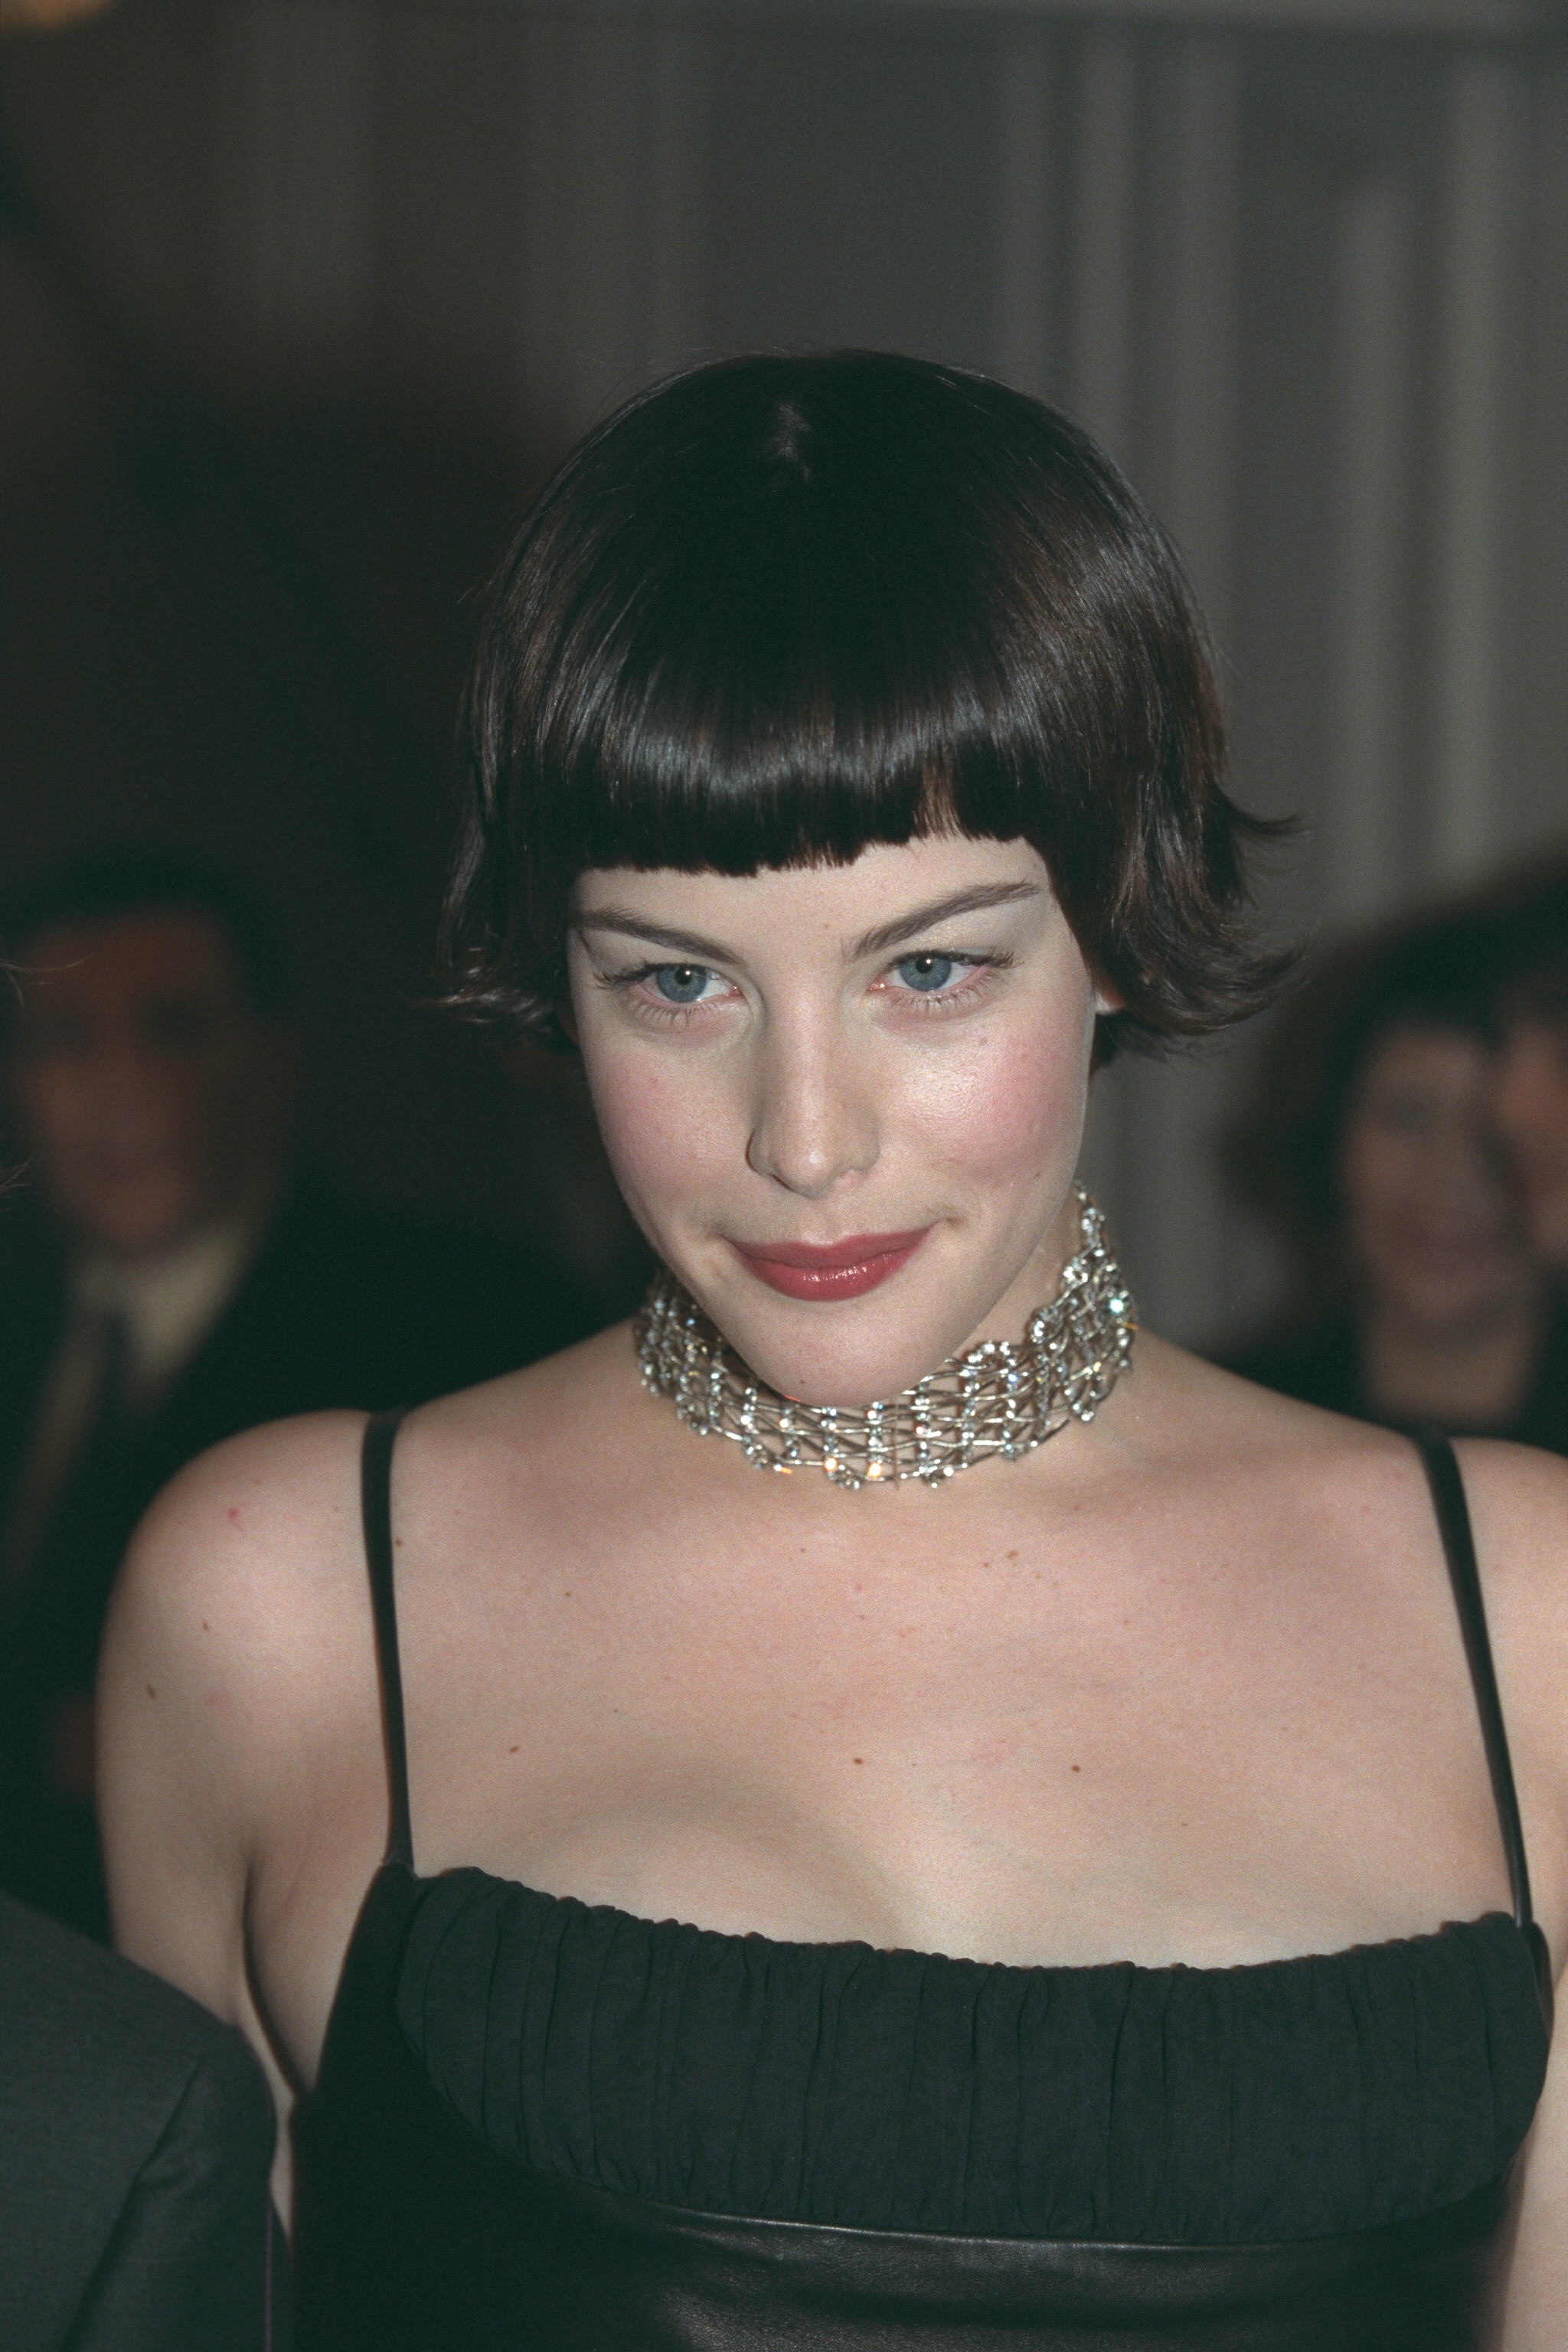 liv tyler with short hair and a choker at the met gala in 1999